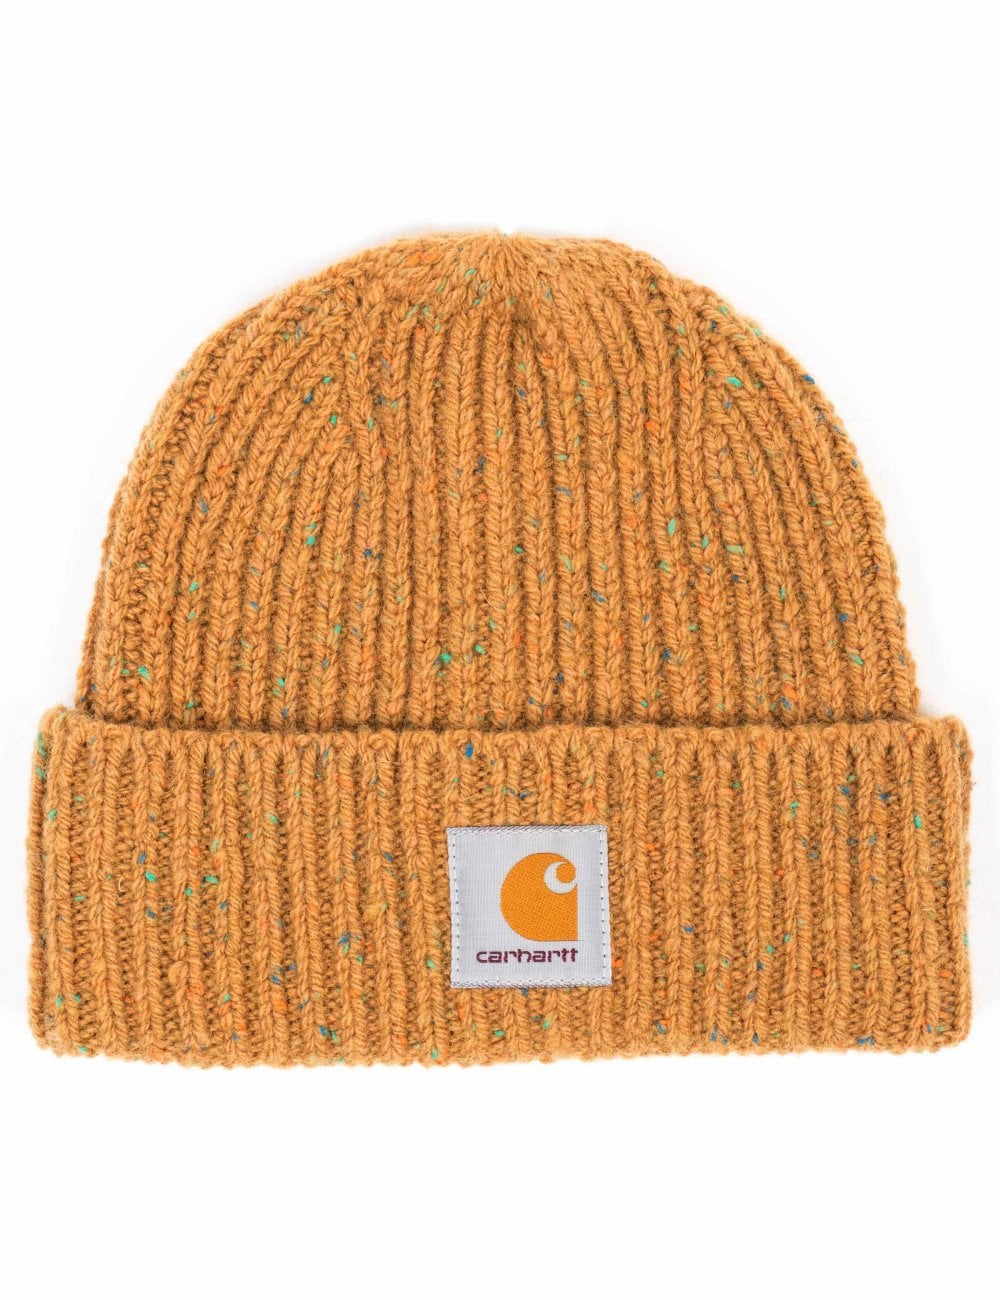 Carhartt WIP Anglistic Beanie Hat - Fawn Heather - Accessories from ... 6819dcbdb40